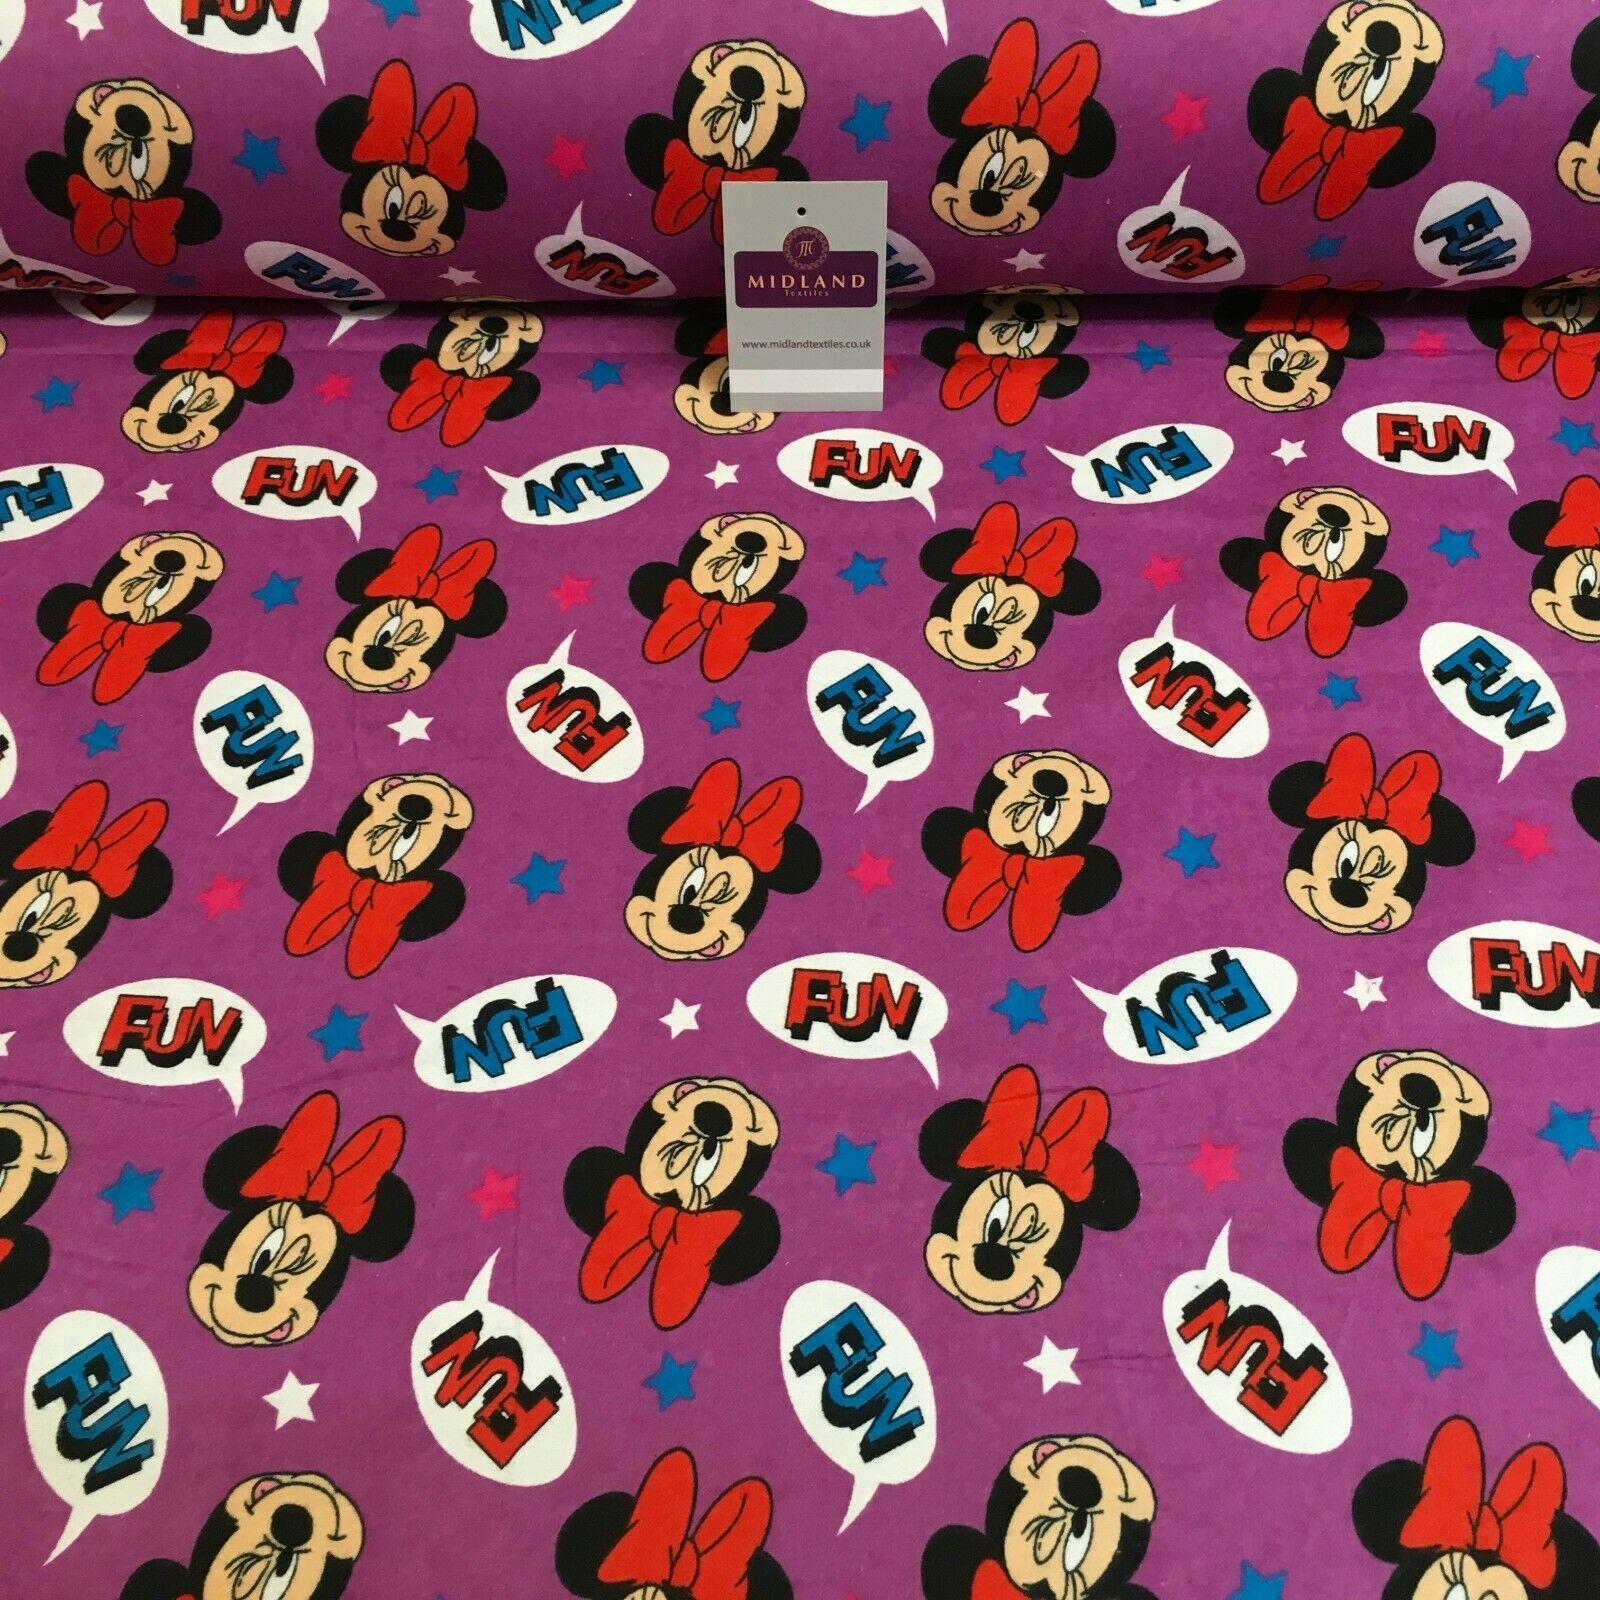 Purple Minnie Mouse Cotton Winceyette Brushed Flannel Fabric 110cm MK1229-10